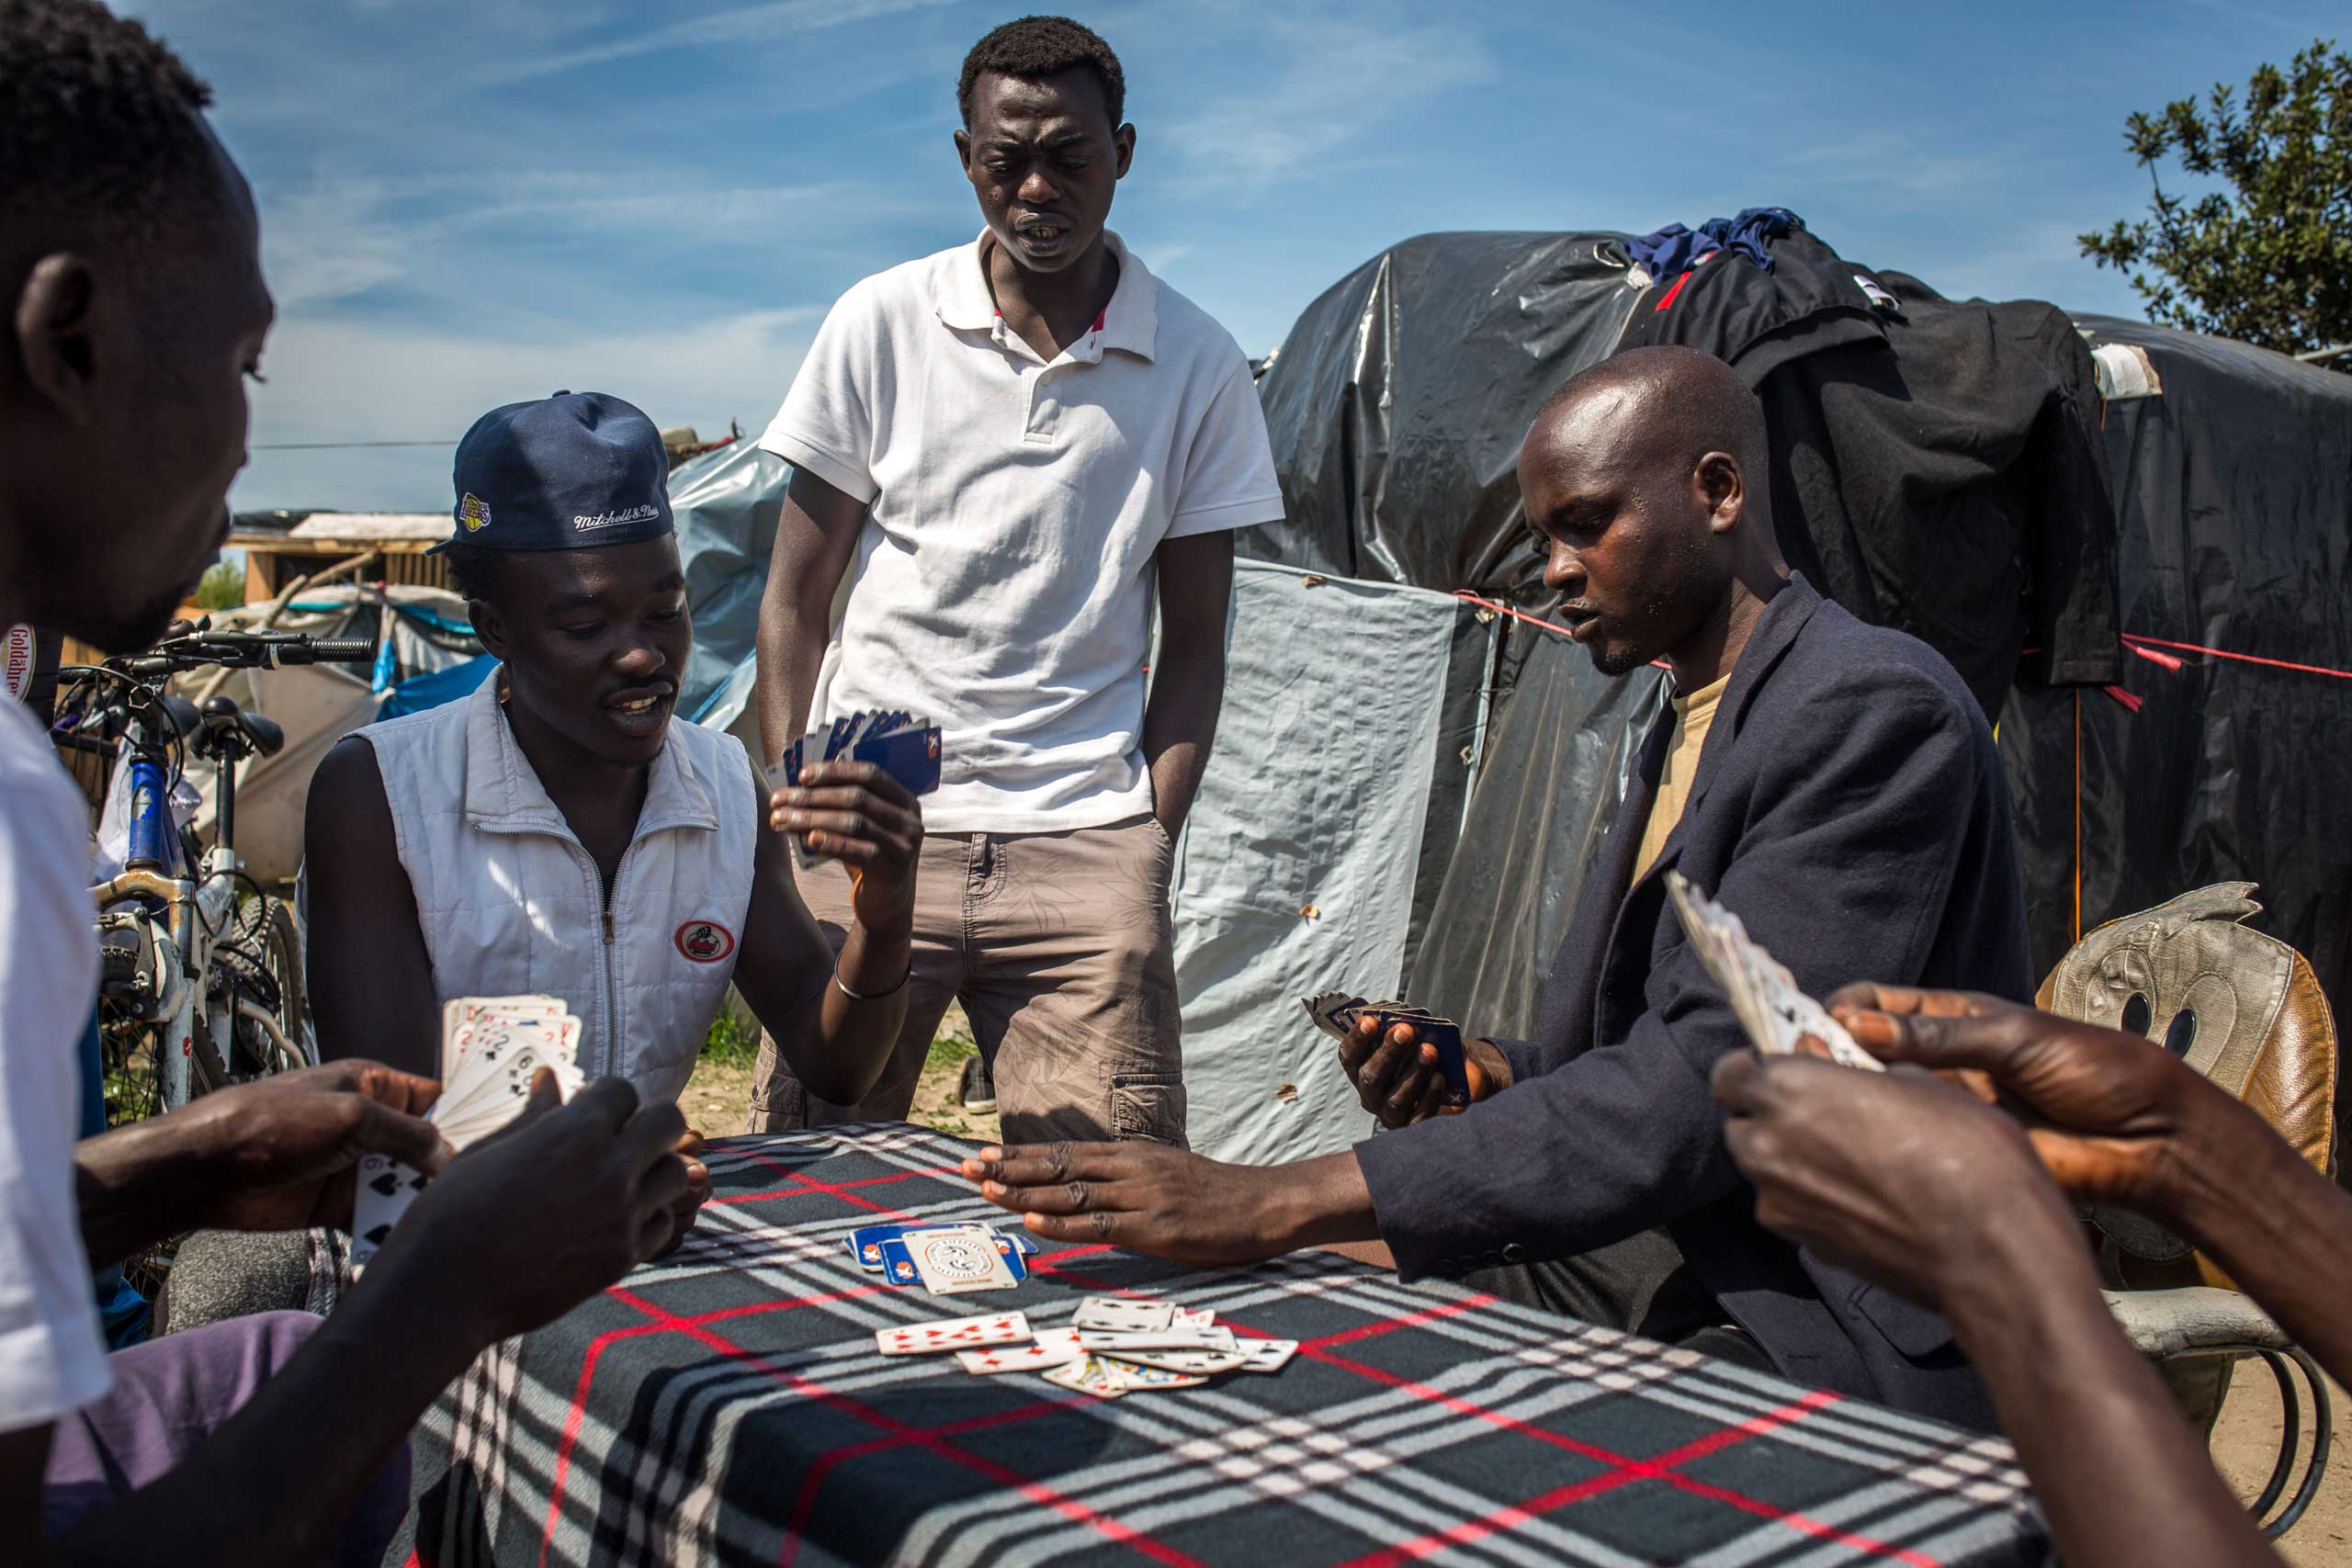 Sudanese men play cards in a make shift camp near the port of Calais, on Aug. 1, 2015.